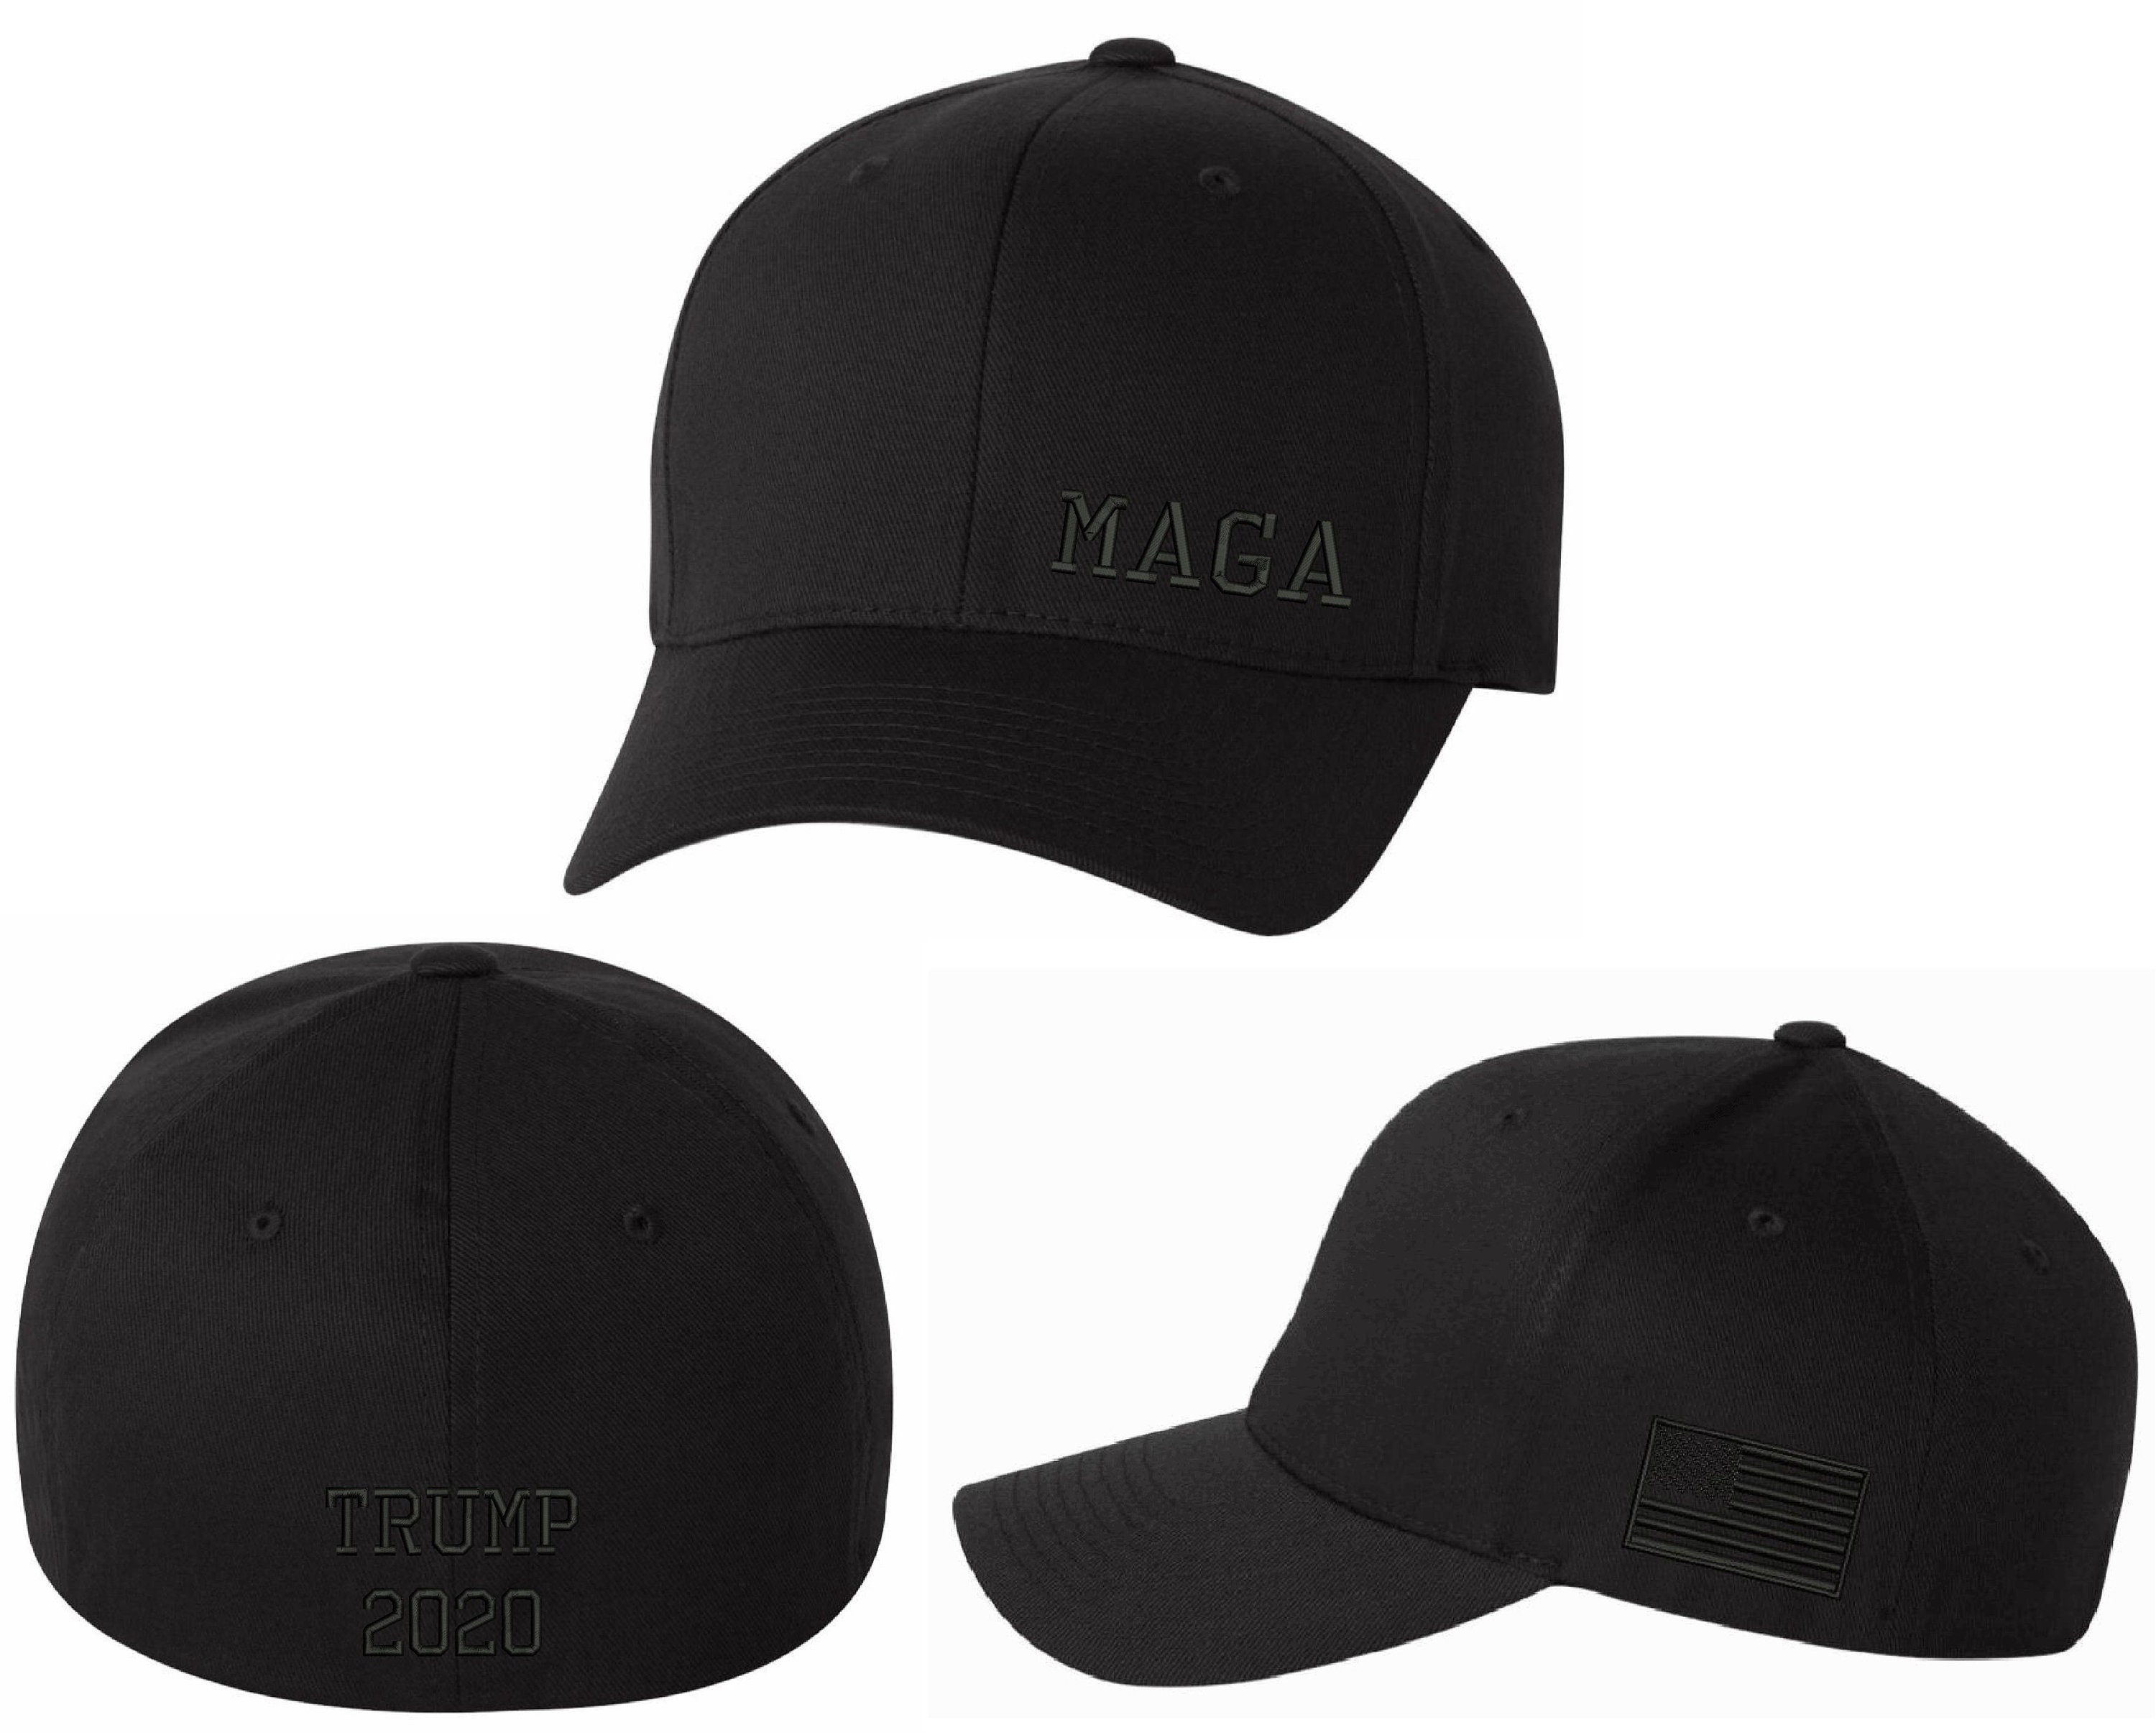 Lower Side MAGA with Flag and Back Make America Great Again Flex Fit Black Hat